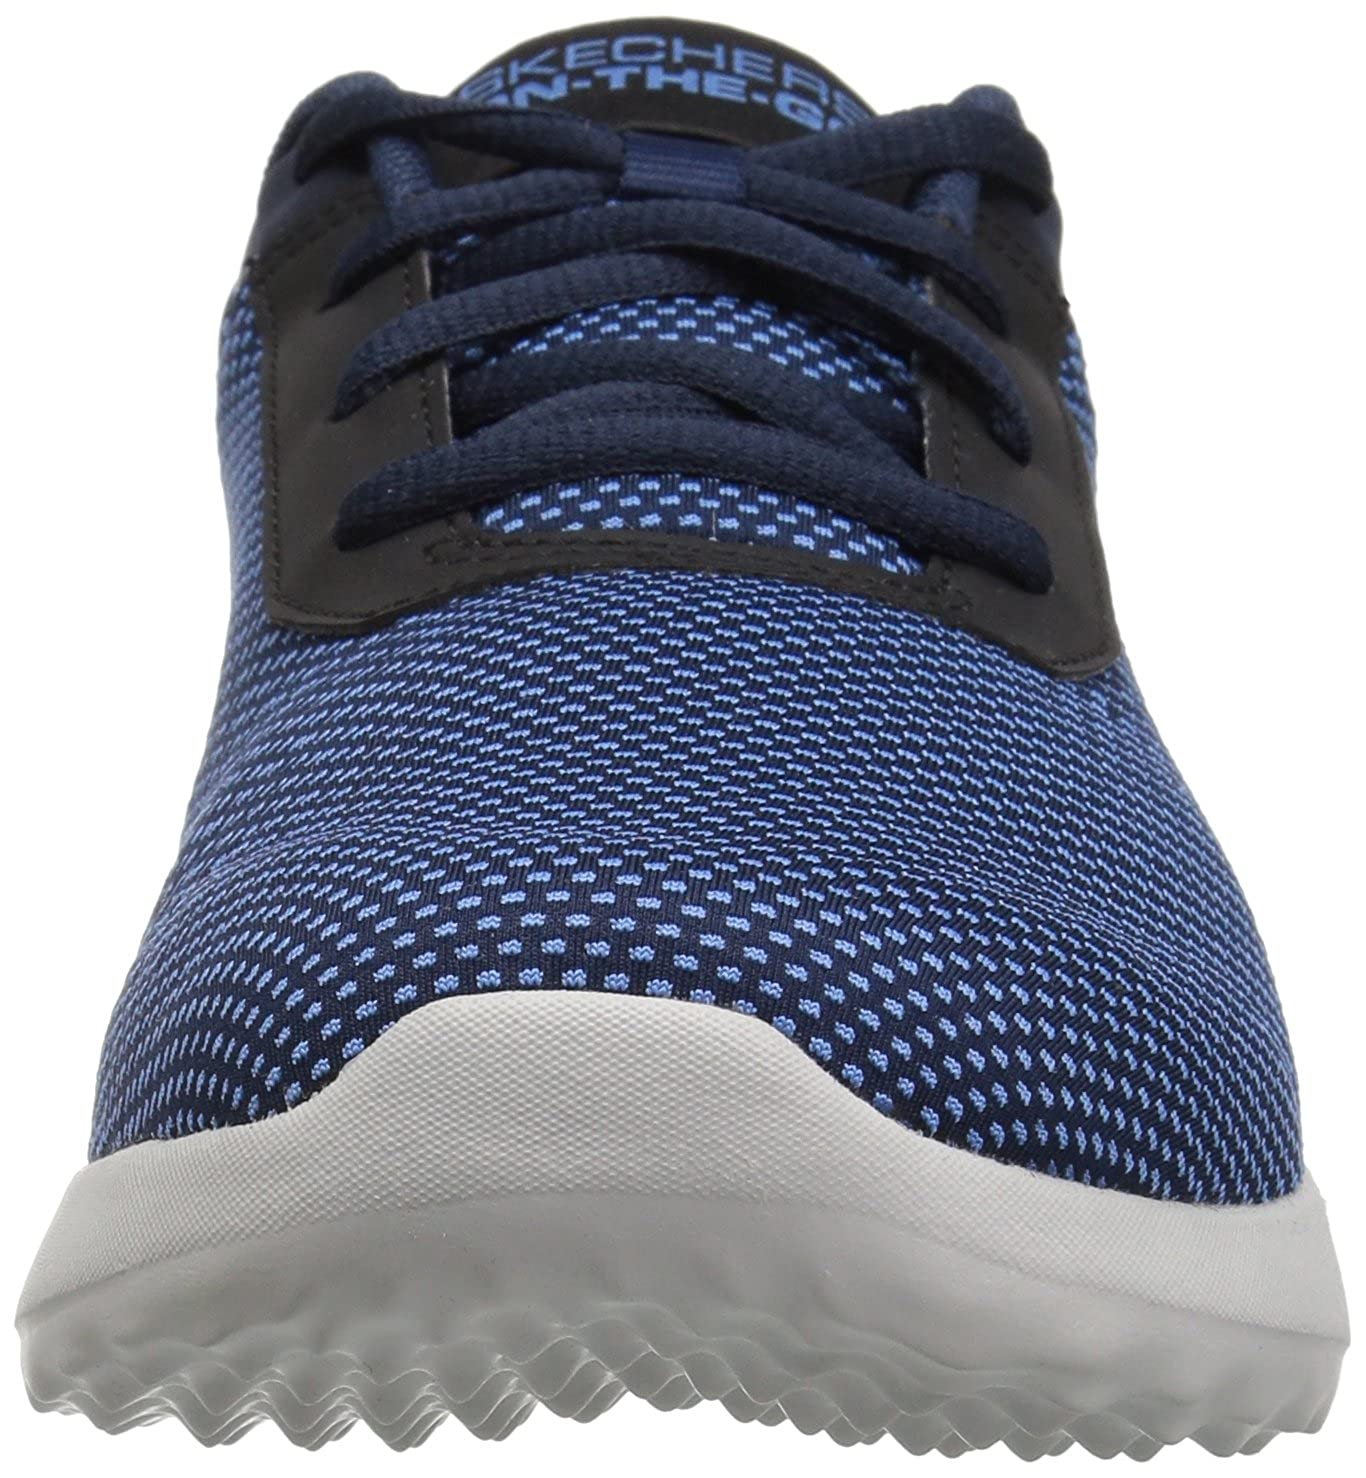 Skechers14769 - on-The-Go - City 3.0 - on-The-Go Brilliance Damen Marineblau/Grau 34eca3